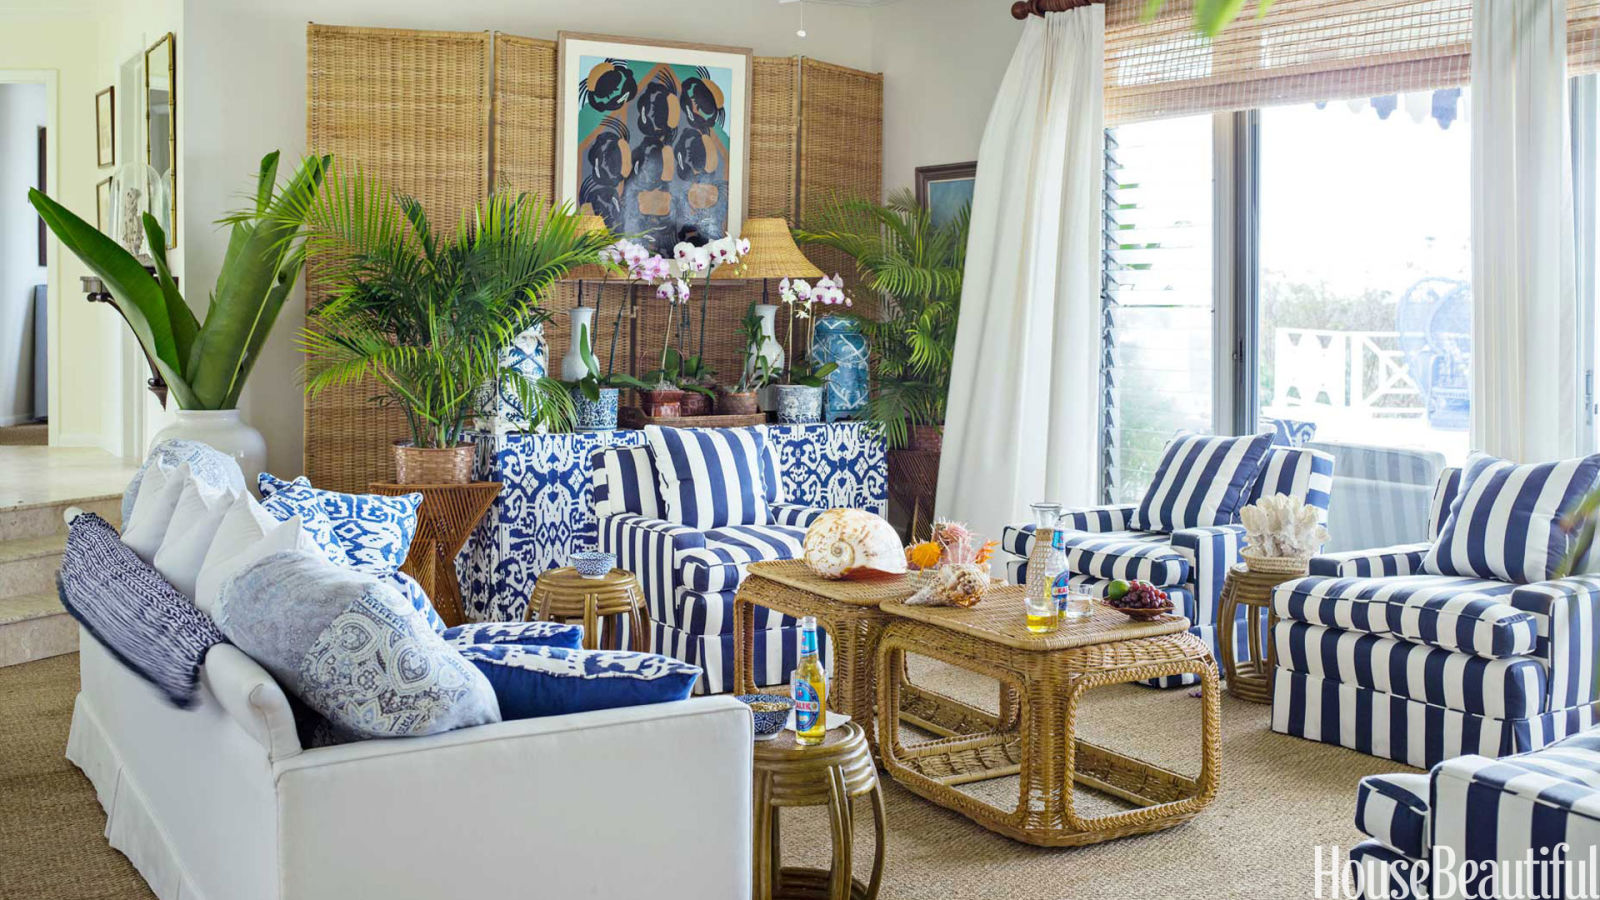 Fullsize Of Island Style Decorating